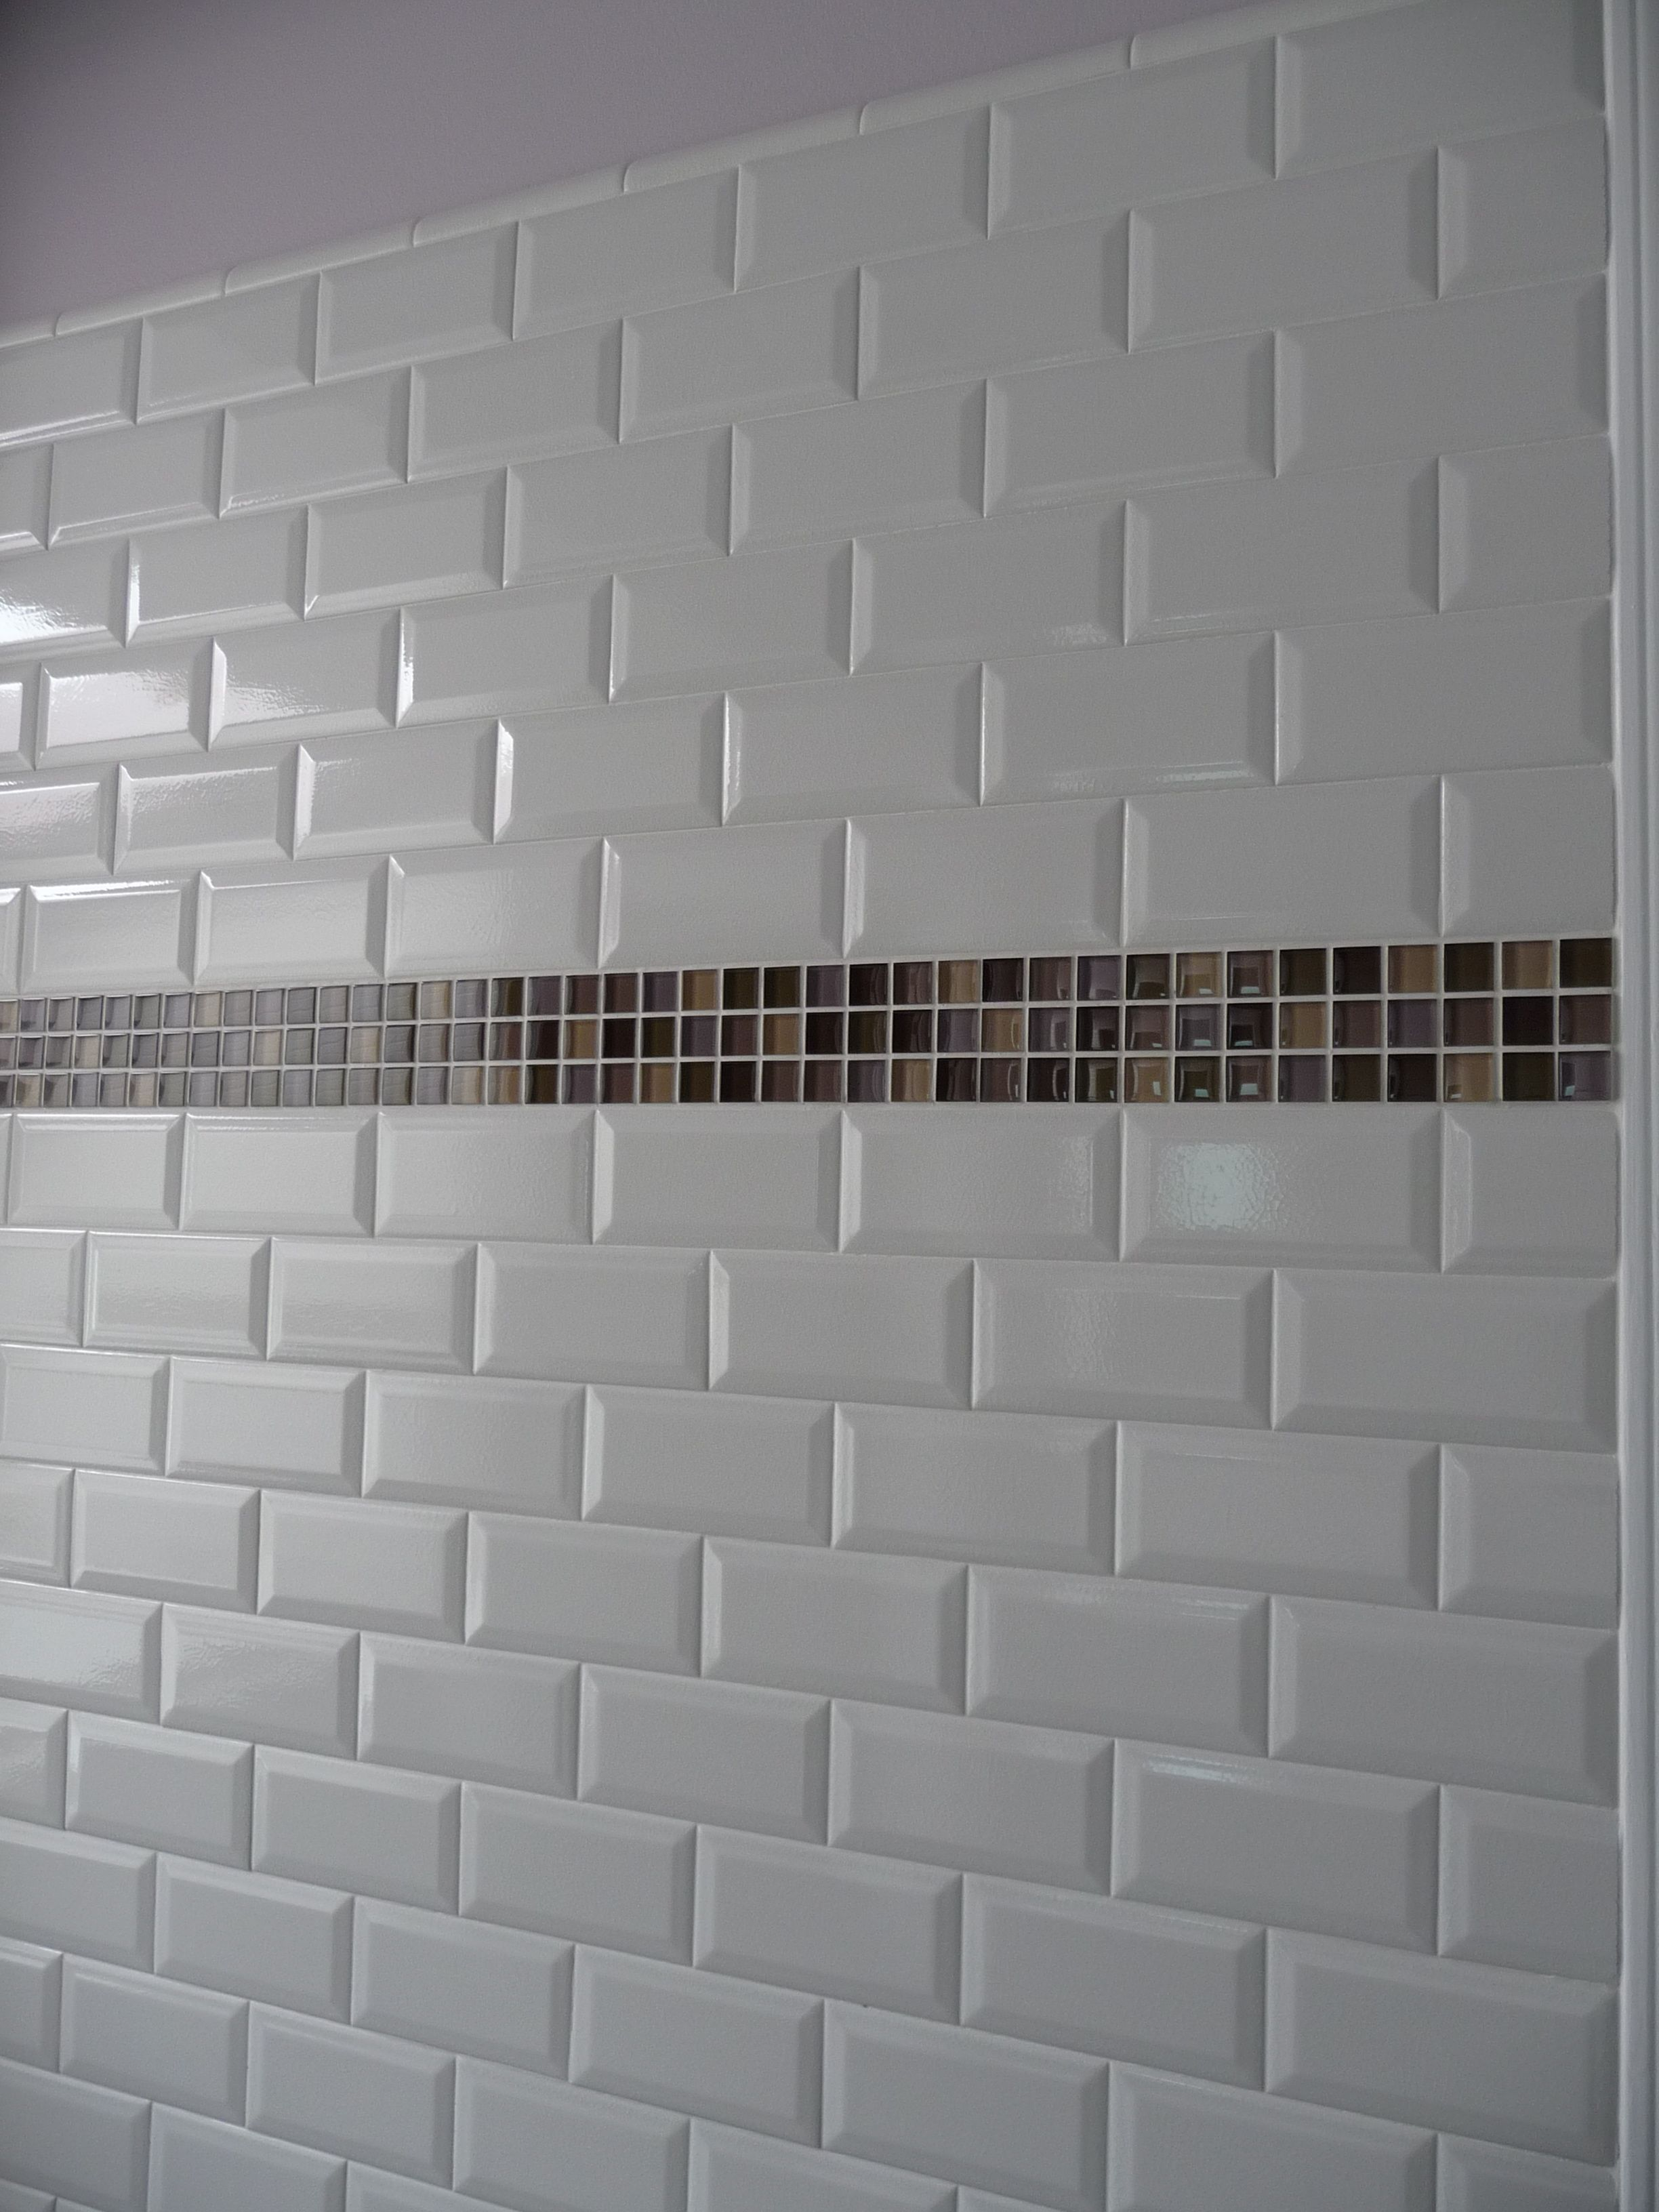 Glass Tiles Bathrooms Kitchens Glass Tiles Kitchen Backsplash Bathroom Tile And Subway